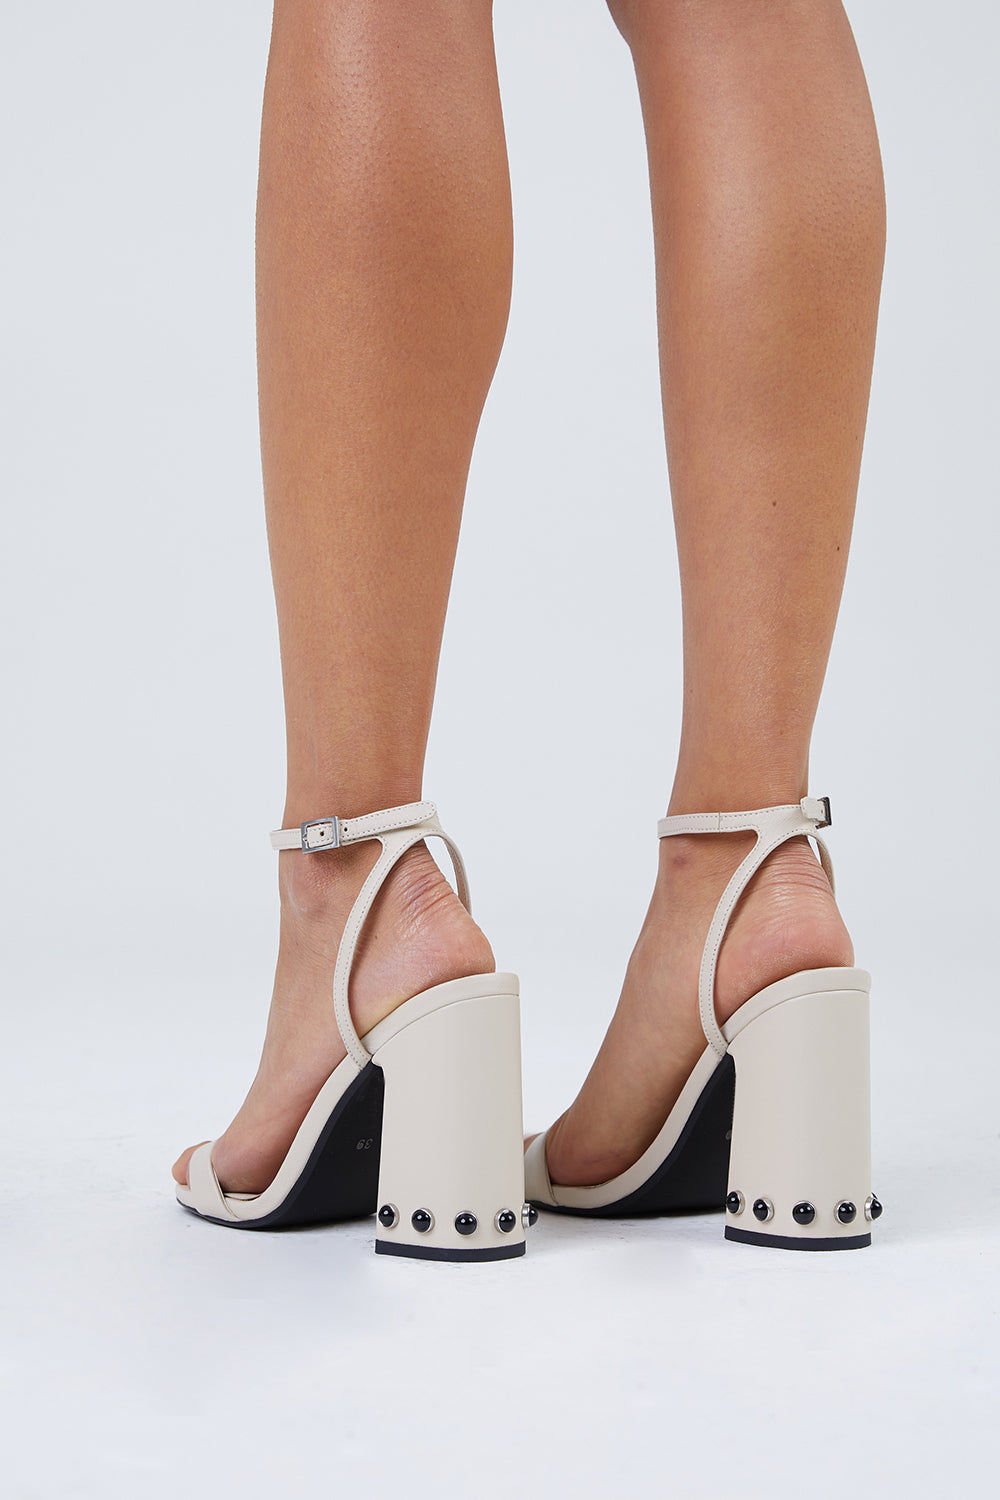 SENSO Yella Chunky Heels - Ivory Shoes | Ivory| Senso Yella Chunky Heel Sandals - Ivory. Features:  Leather heeled sandals Open Toe Stud detailing Ankle buckle fastening Square heel